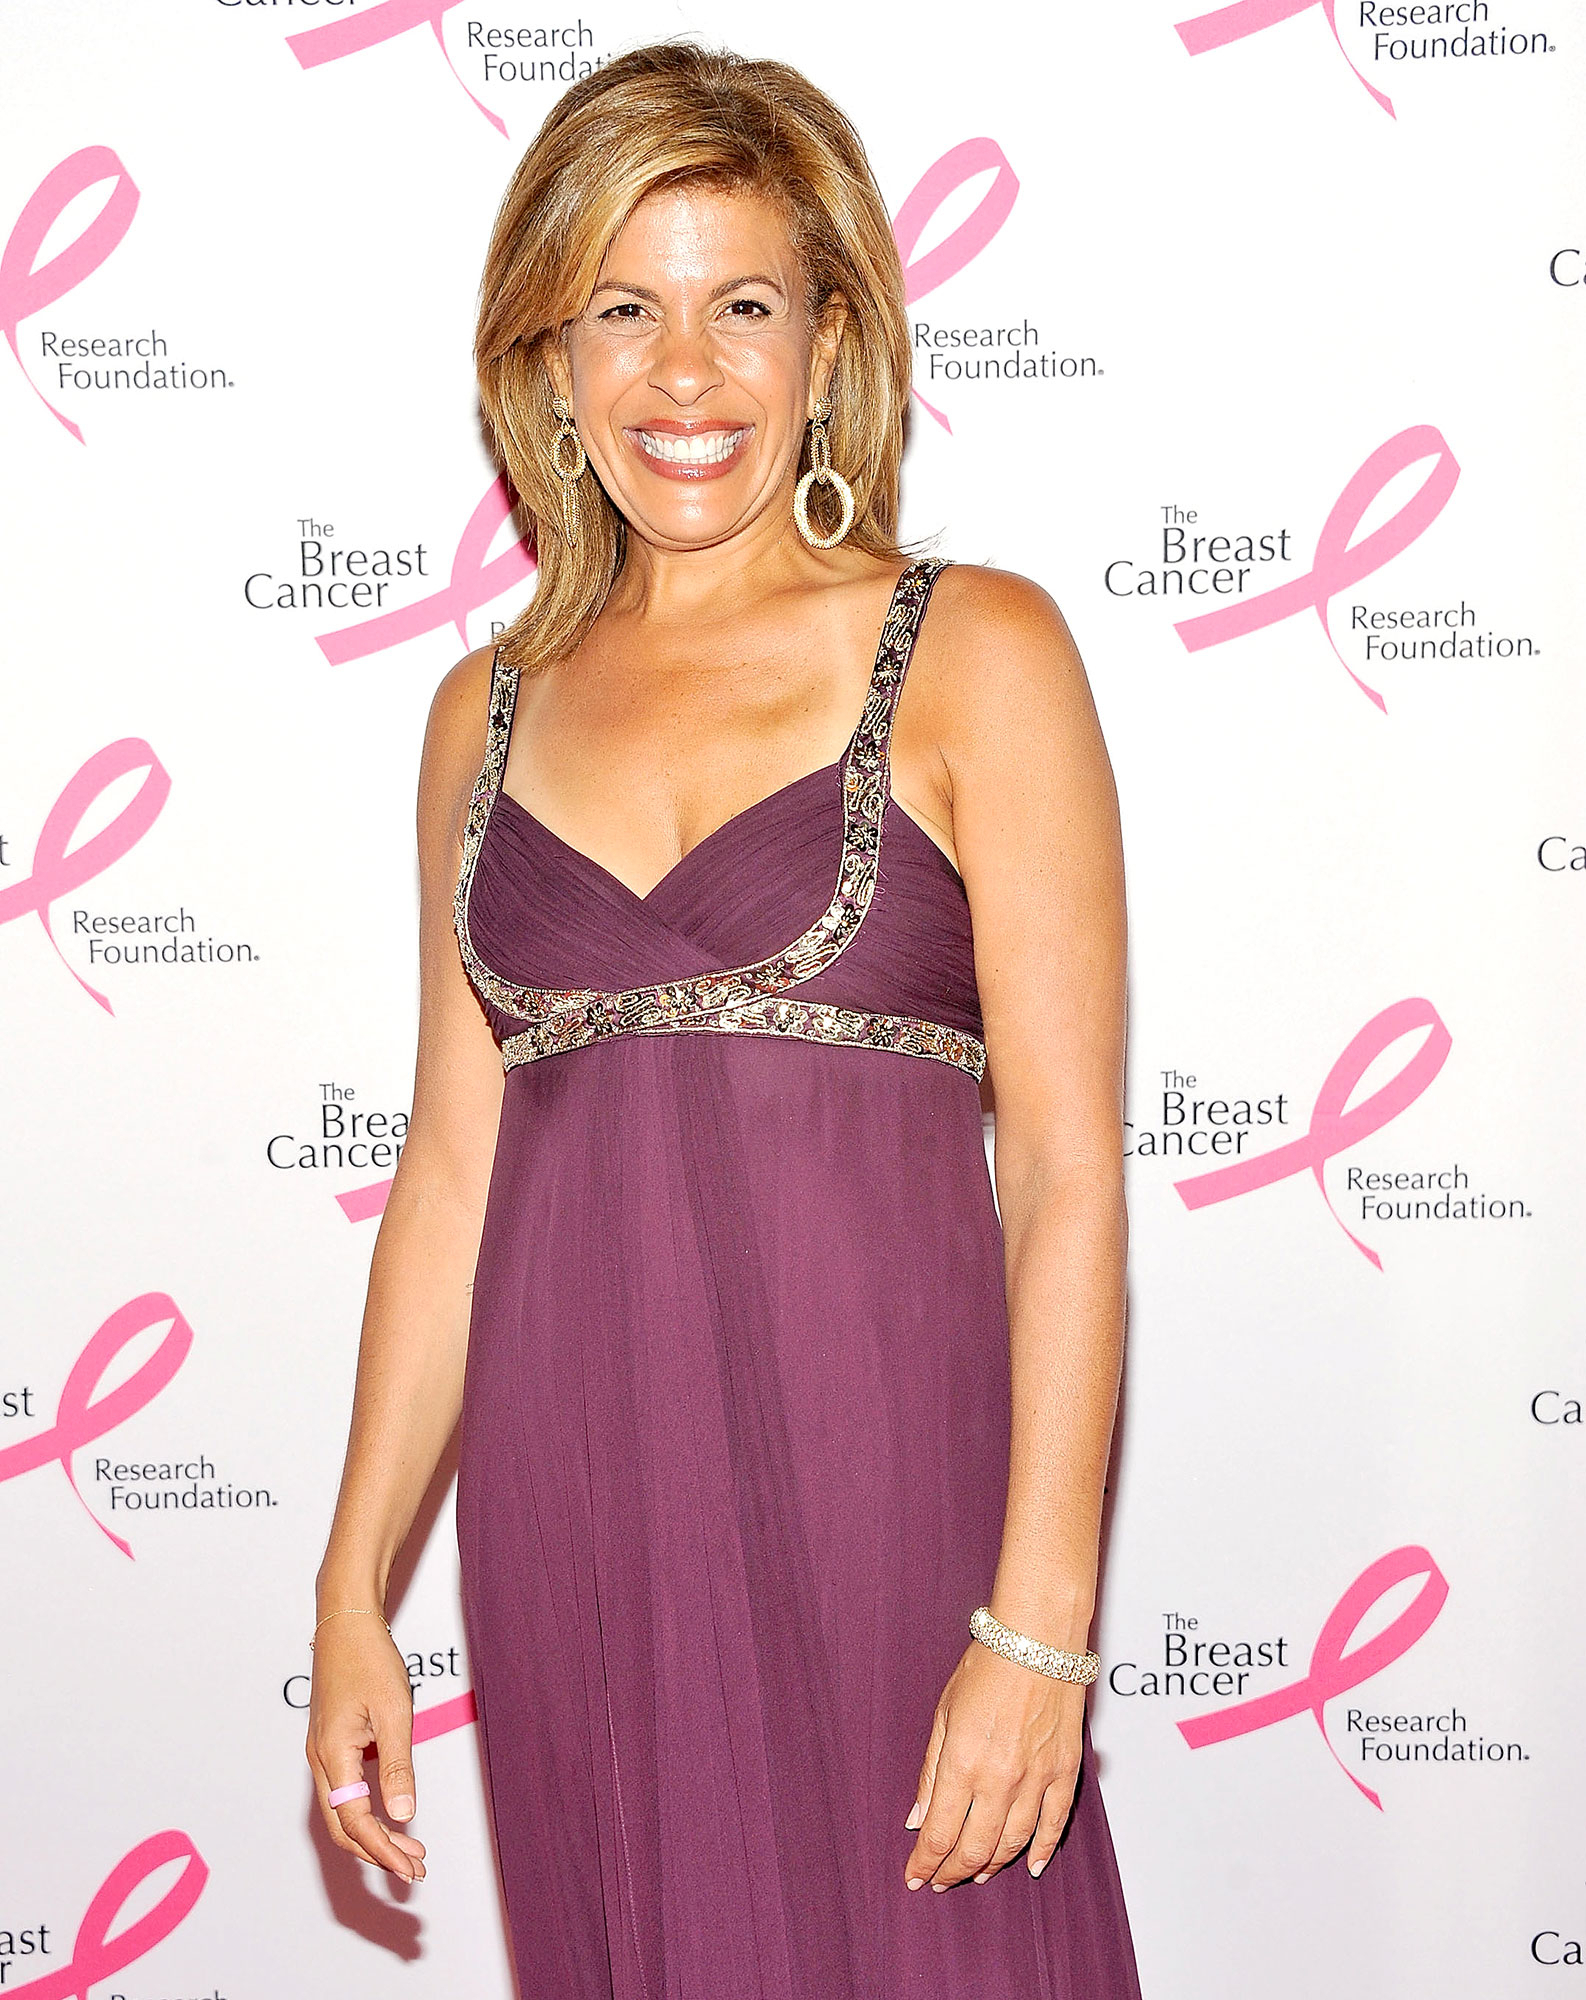 Hoda Kotb at The Breast Cancer Research Foundation's 2012 Hot Pink Party at The Waldorf-Astoria on April 30, 2012 in New York City.